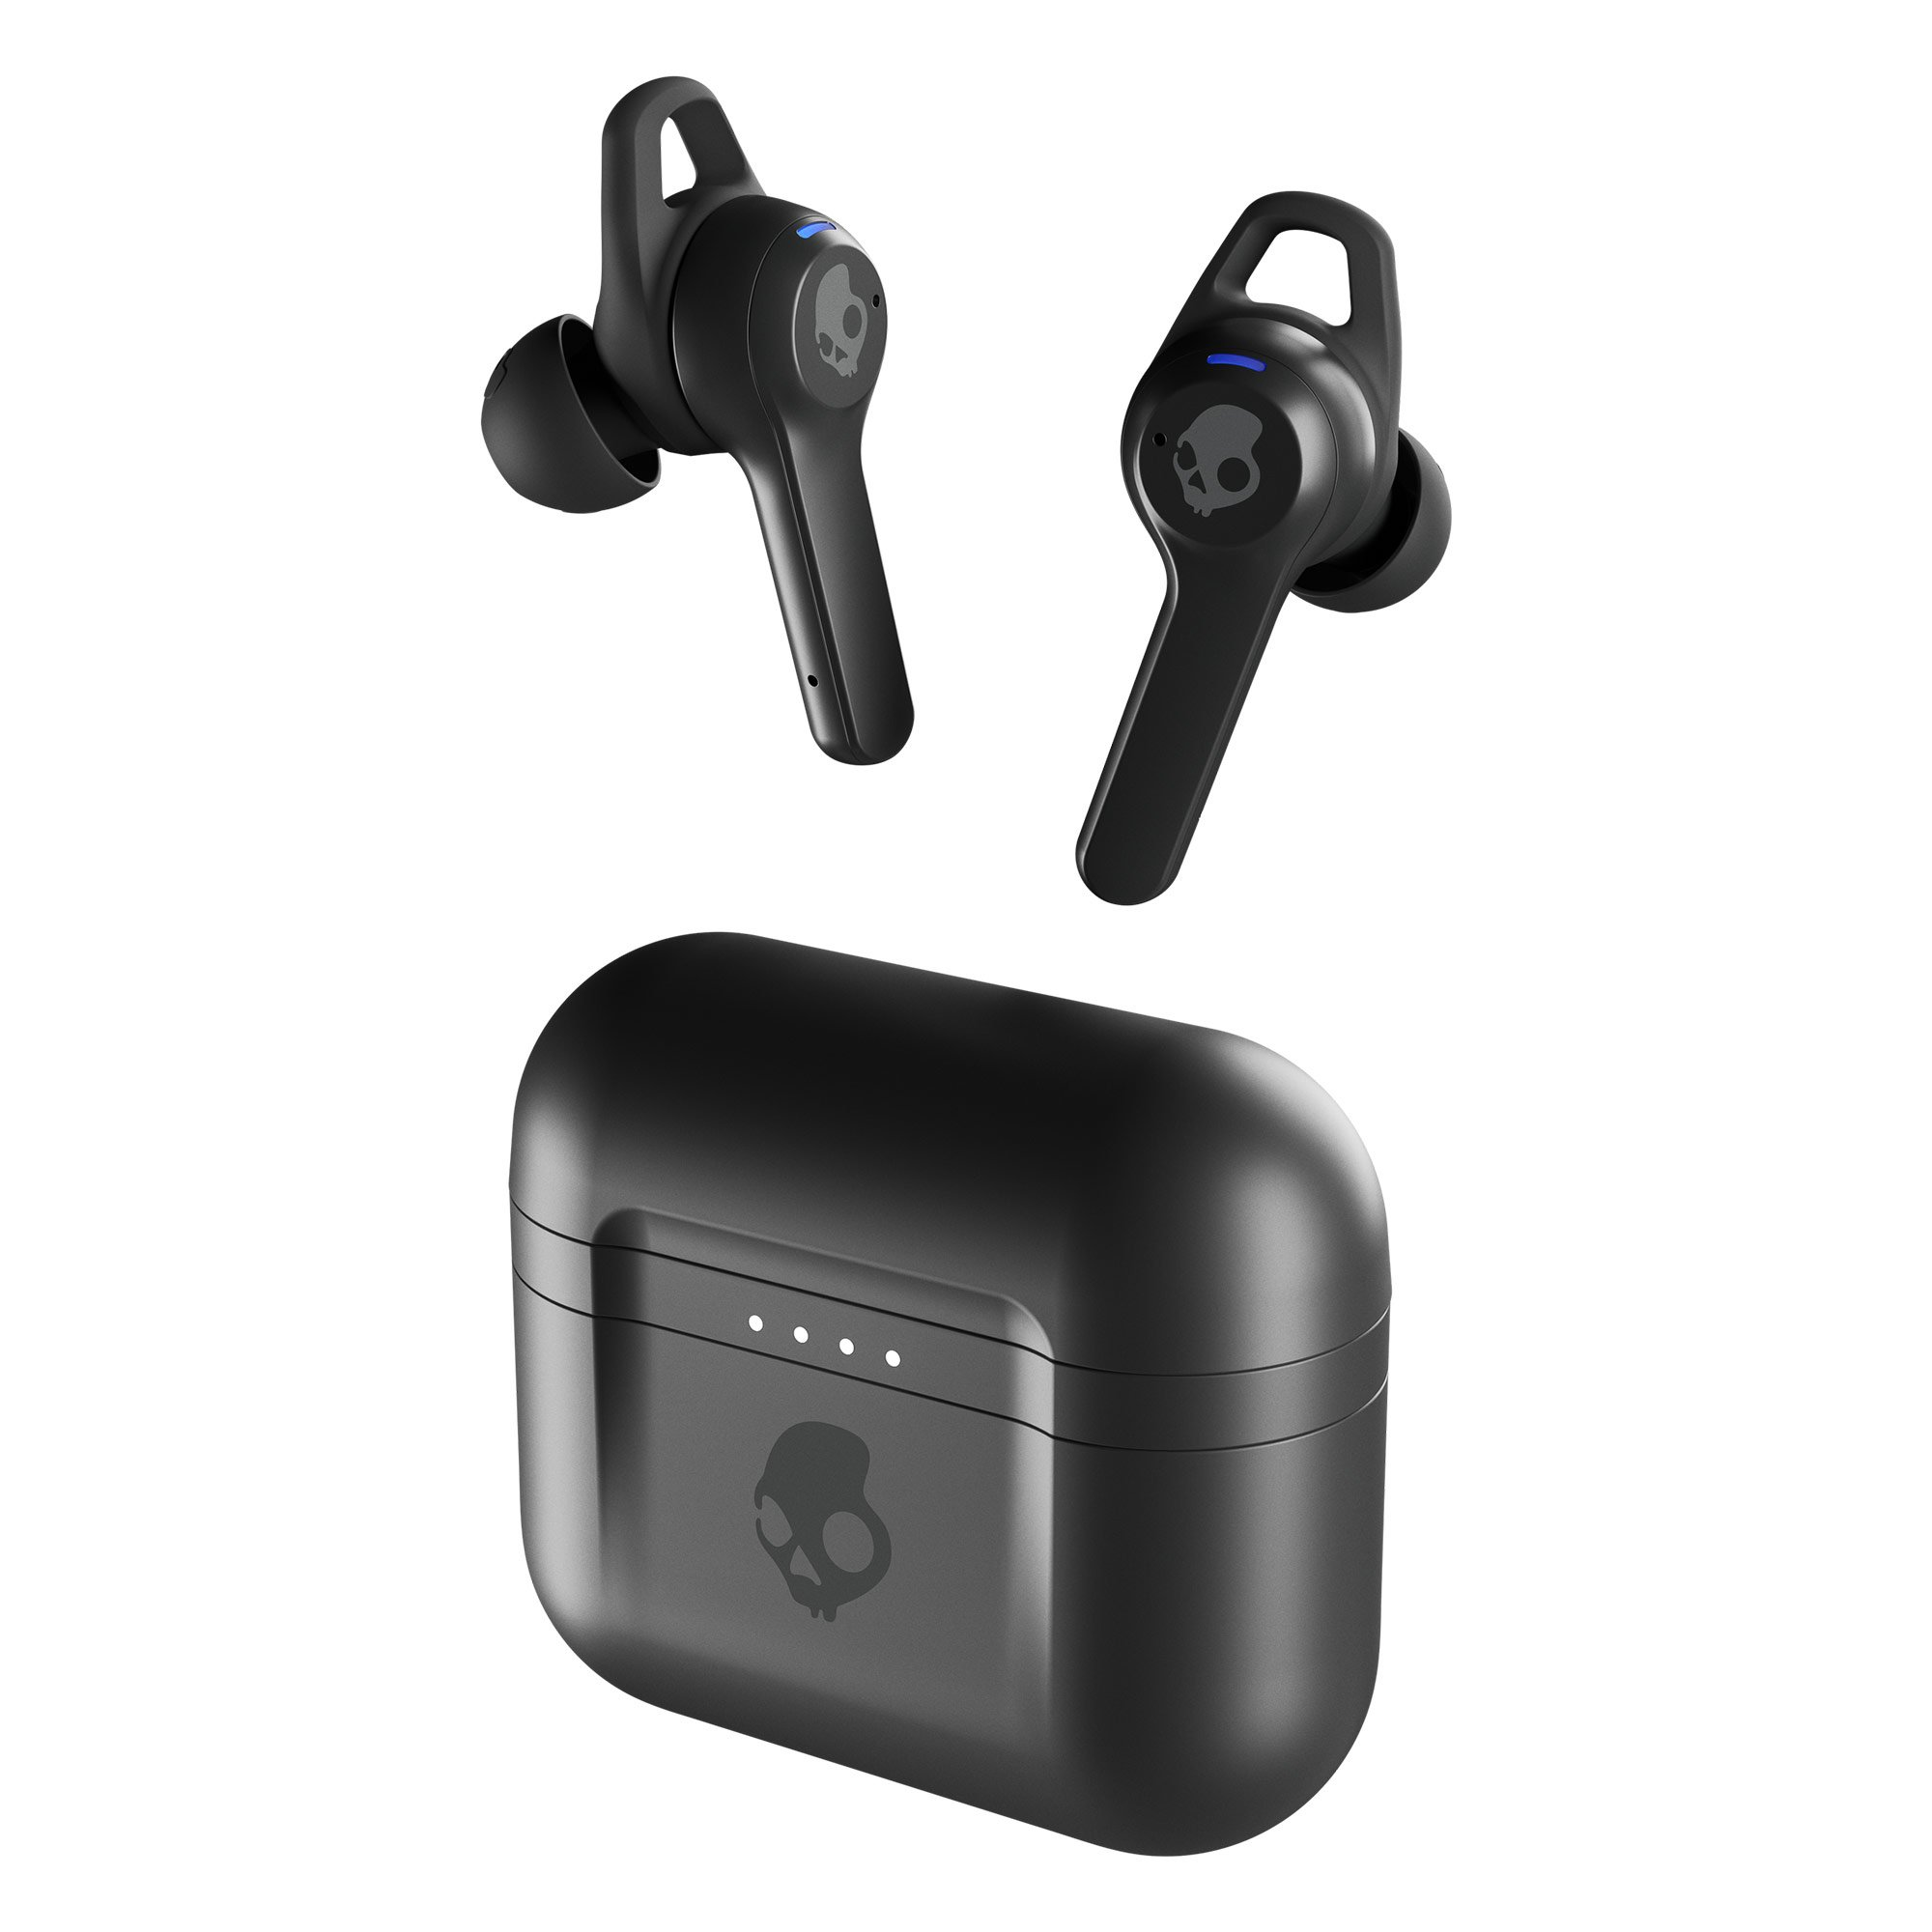 Tai Nghe Skullcandy Indy ANC Noise Canceling Wireless